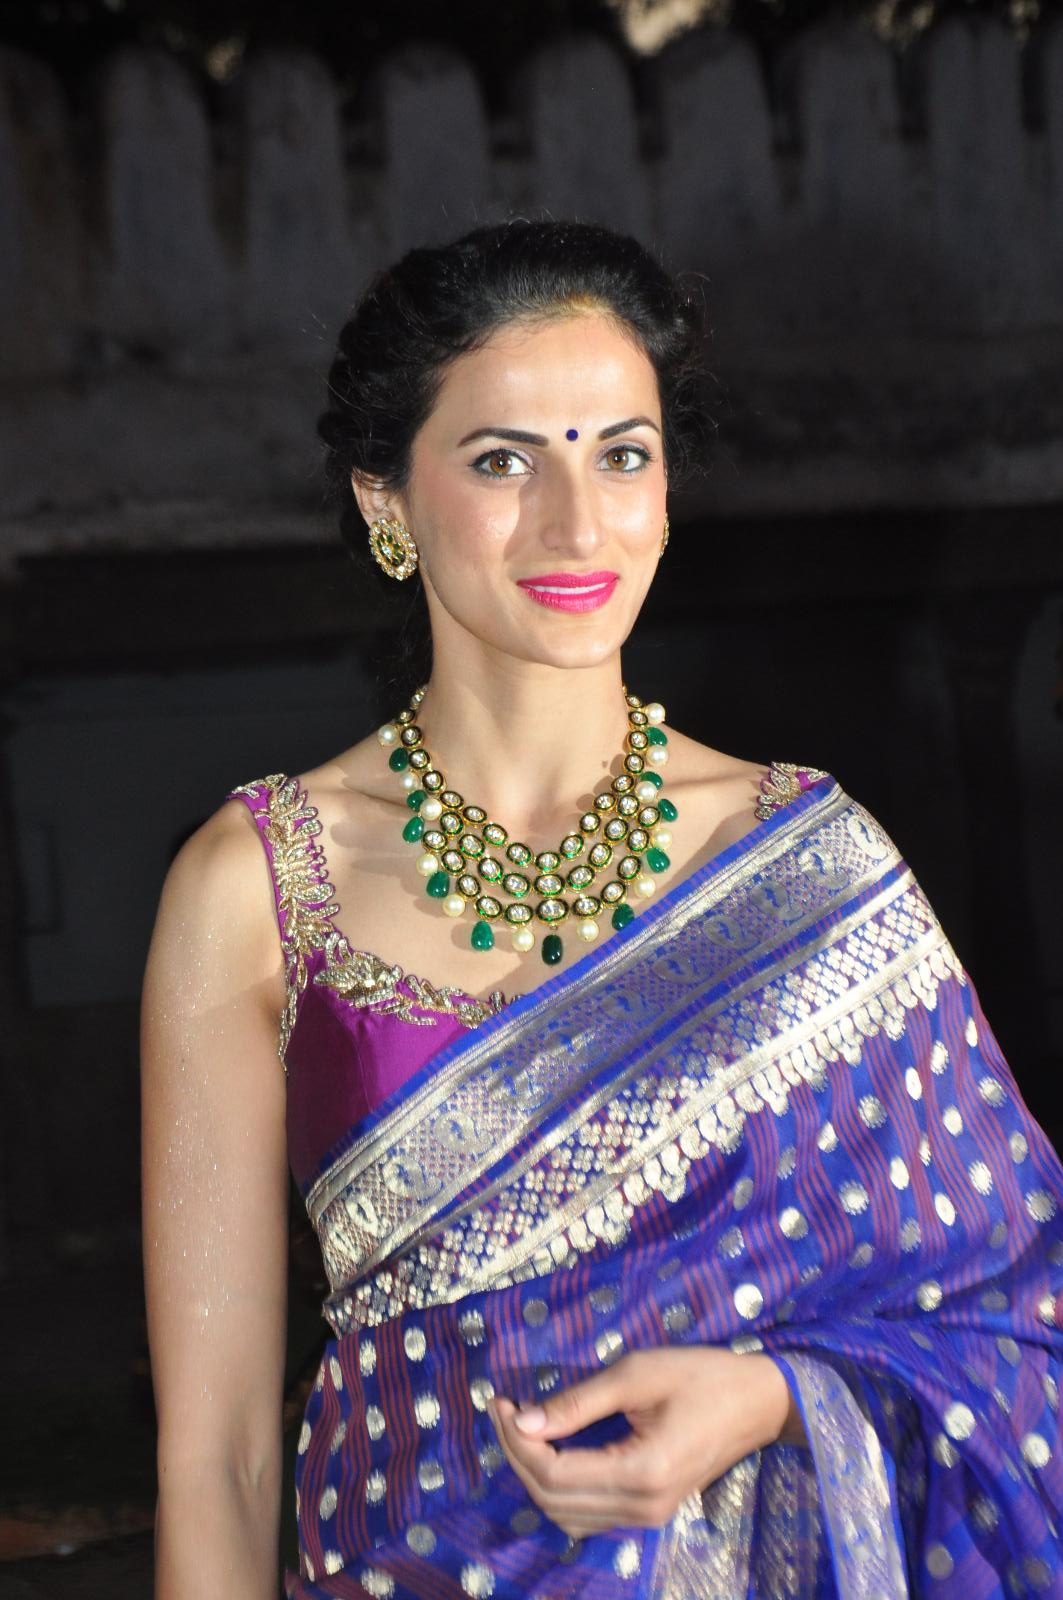 shilpa reddy Brand New Photo Stills of Beautiful Shilpa Reddy | Fashion | Modelling Shilpa Reddy 124 e1485256714832